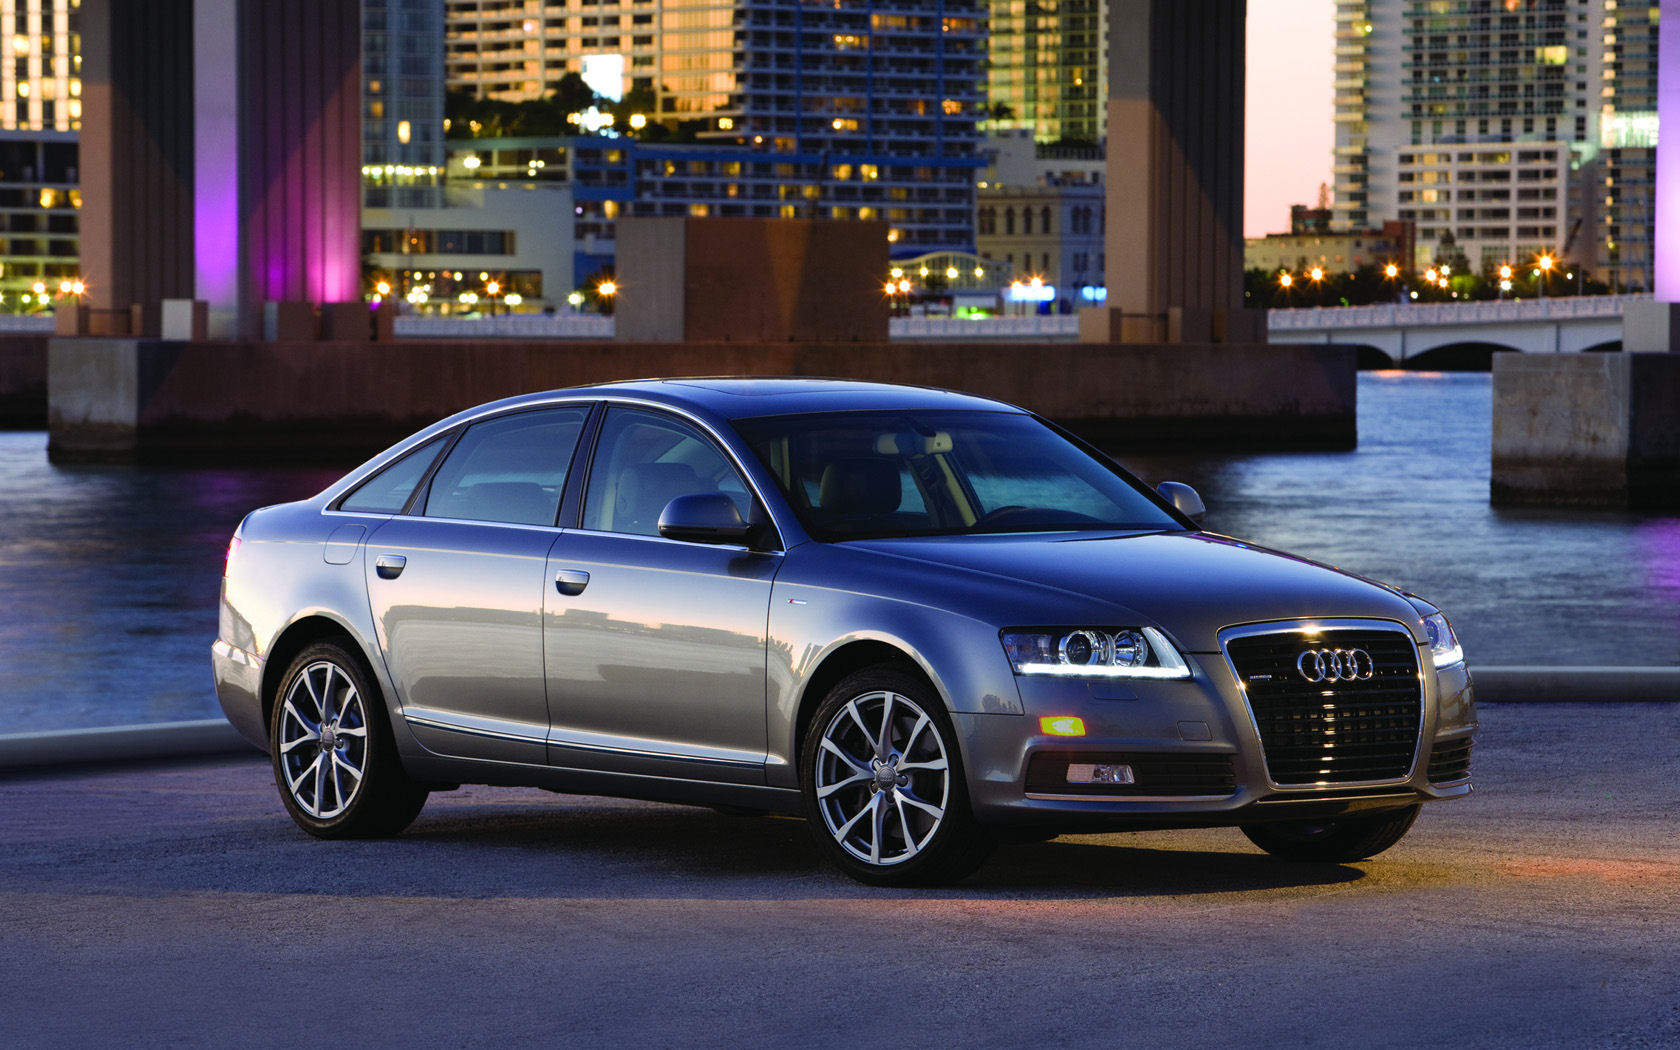 Audi Audi A6 Audi A6 Desktop Wallpapers Widescreen Wallpaper 1680x1050